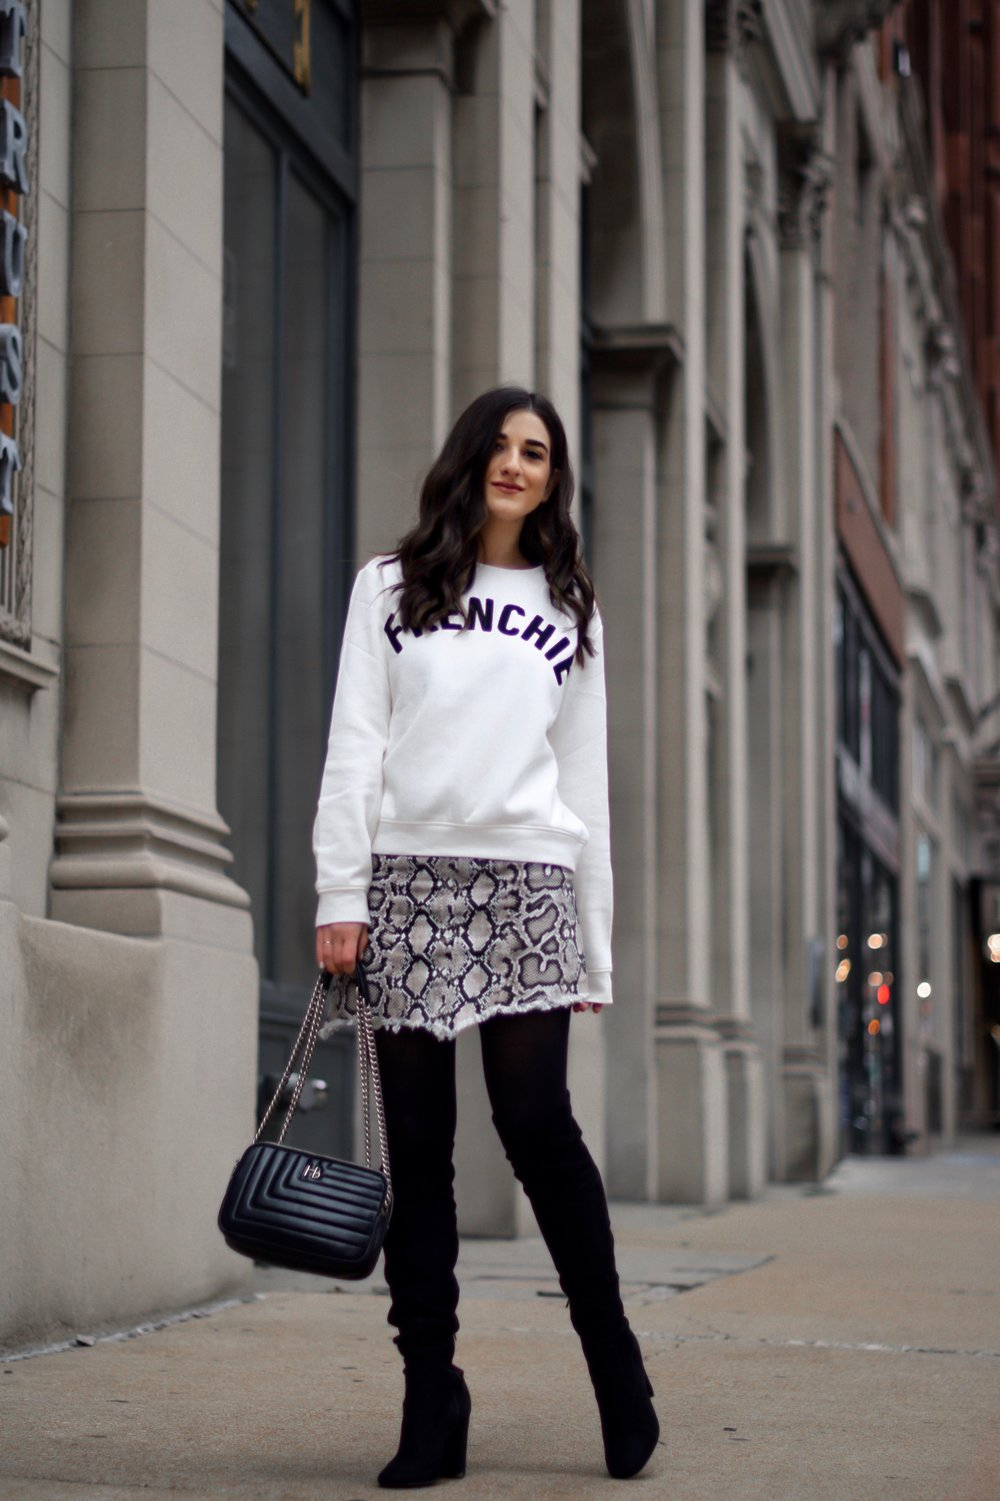 10 Best Organizing Tips Snakeskin Skirt White Sweatshirt Esther Santer Fashion Blog NYC Street Style Blogger Outfit OOTD Trendy Shopping How To Wear Frenchie H&M Opaque Tights Over The Knee Black Boots Winter  Fall Zara Shoes Saint Louis Arch Downtown.jpg